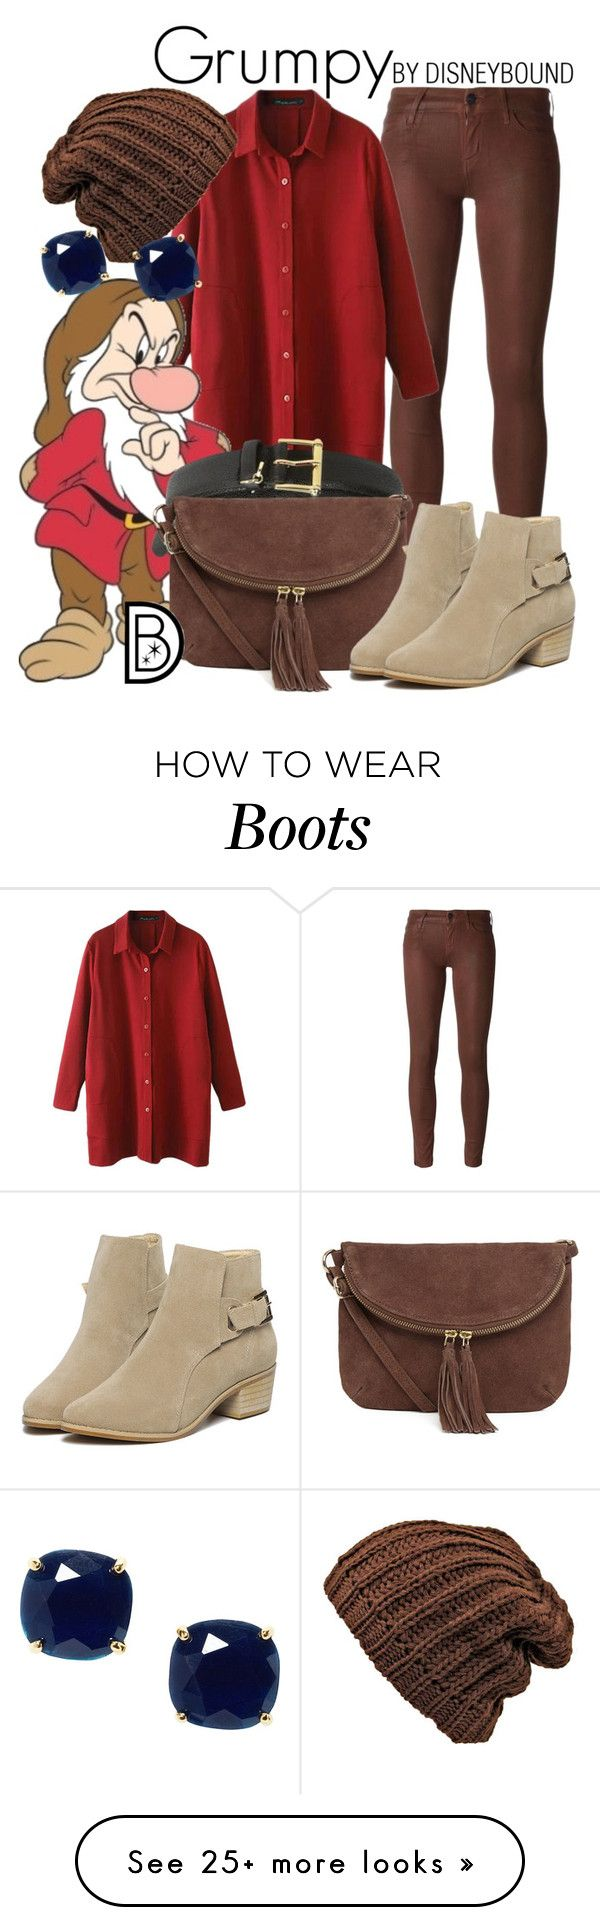 """Grumpy"" by leslieakay on Polyvore featuring Koral, 7 For All Mankind, Lauren Ralph Lauren, Warehouse, Kate Spade, disney, disneybound and disneycharacter"